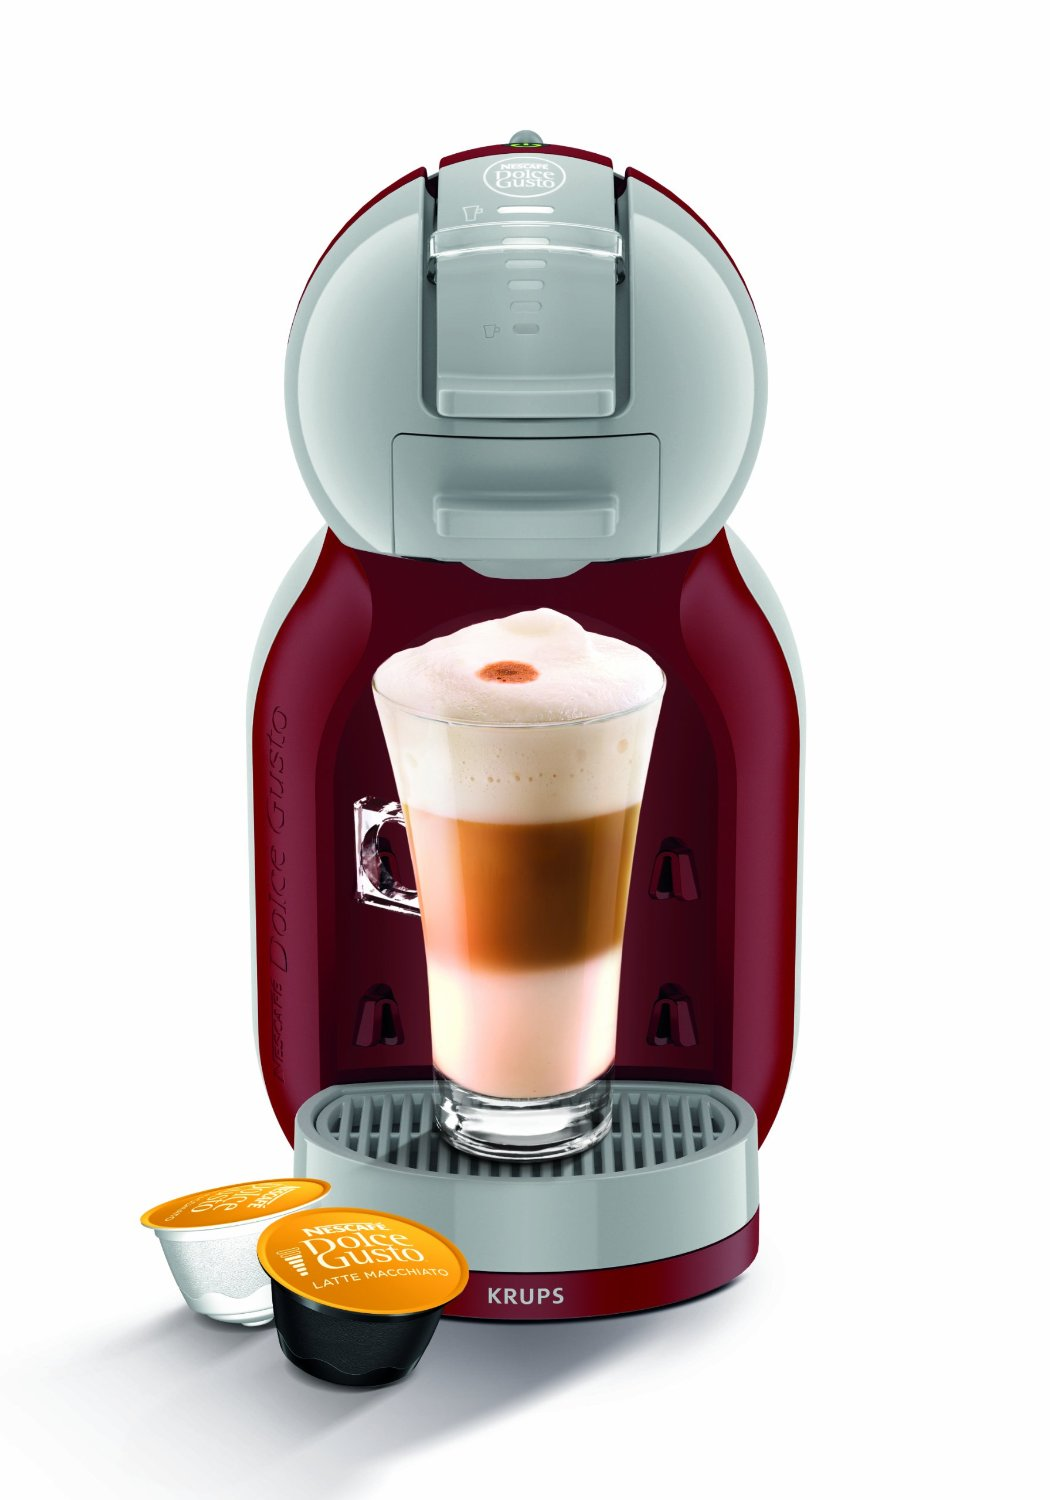 nescafe dolce gusto by krups kp120540 minime coffee machine auto play and select. Black Bedroom Furniture Sets. Home Design Ideas